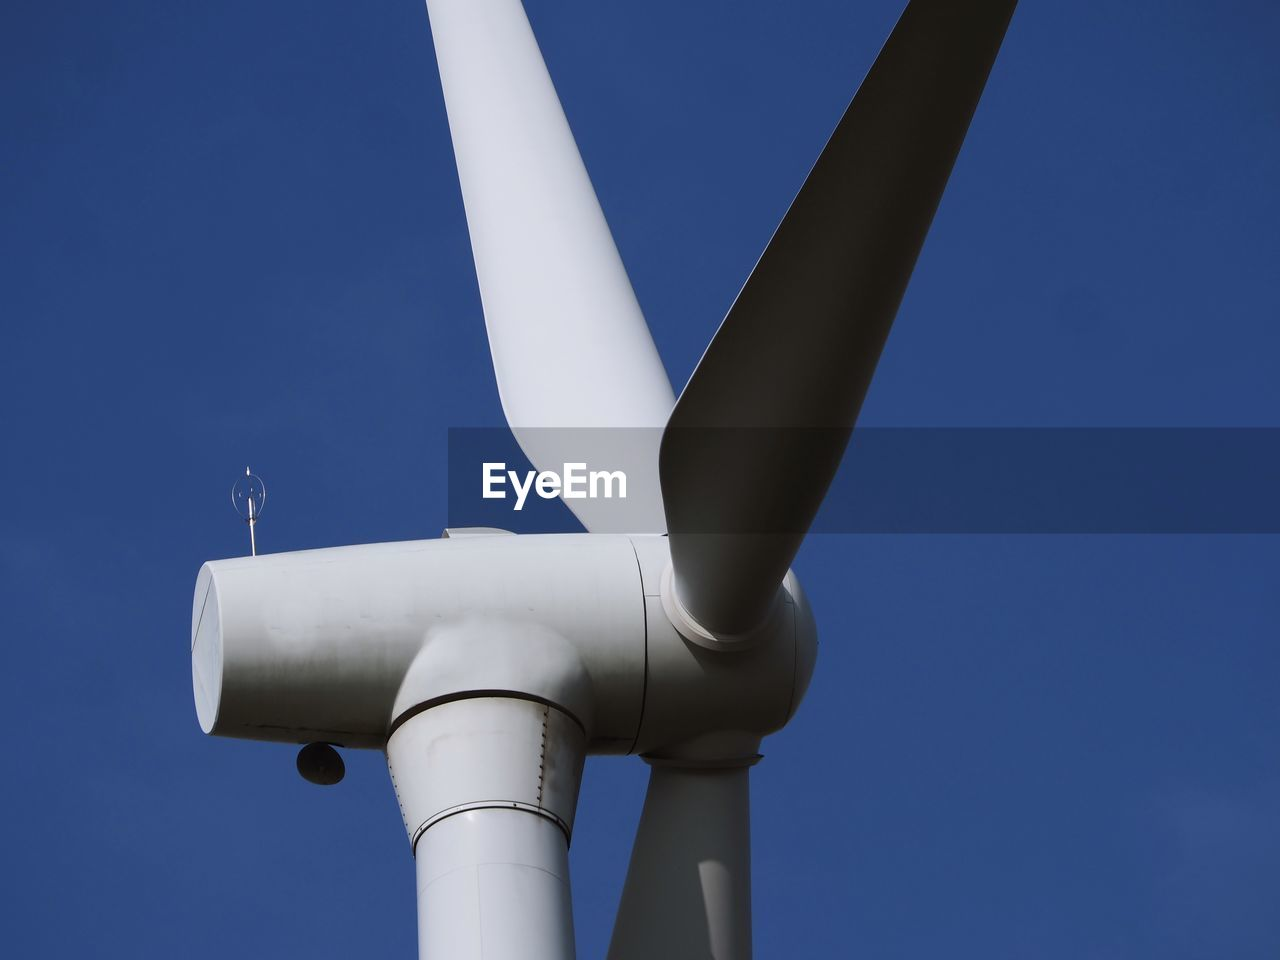 sky, blue, low angle view, no people, day, clear sky, nature, technology, outdoors, sunlight, metal, architecture, air vehicle, copy space, white color, security, industry, mode of transportation, sunny, turbine, aerospace industry